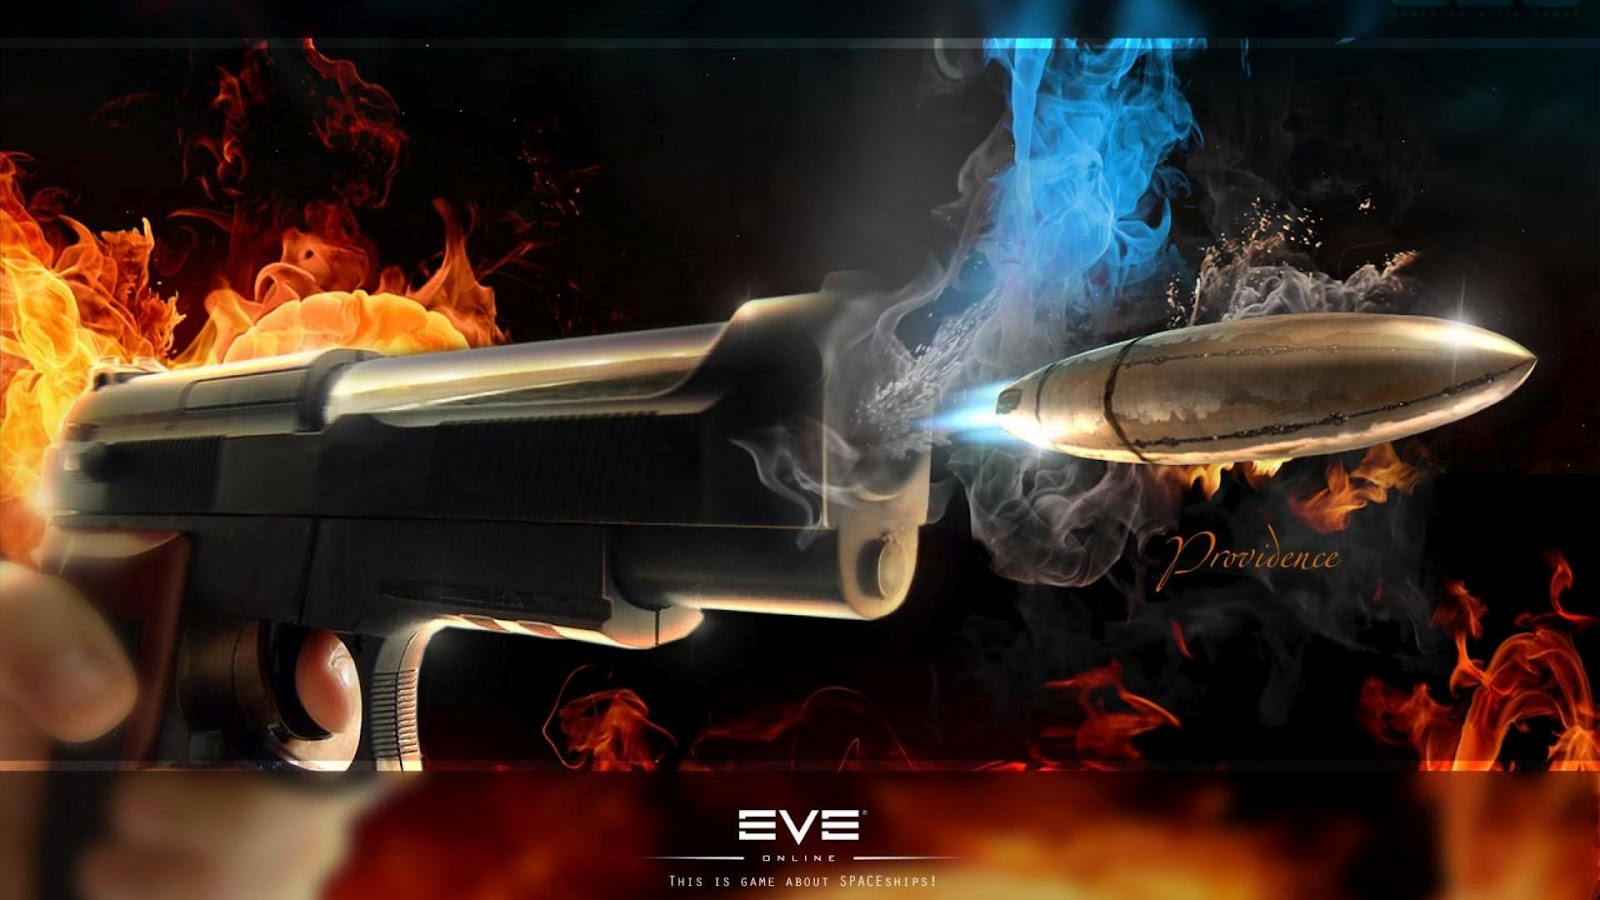 http://4.bp.blogspot.com/-WcZtAr7H3-E/UA9IhiW2GqI/AAAAAAAABCA/BUsghTm5gco/s1600/video-game-eve-online-wallpaper2-1080x1920.jpg